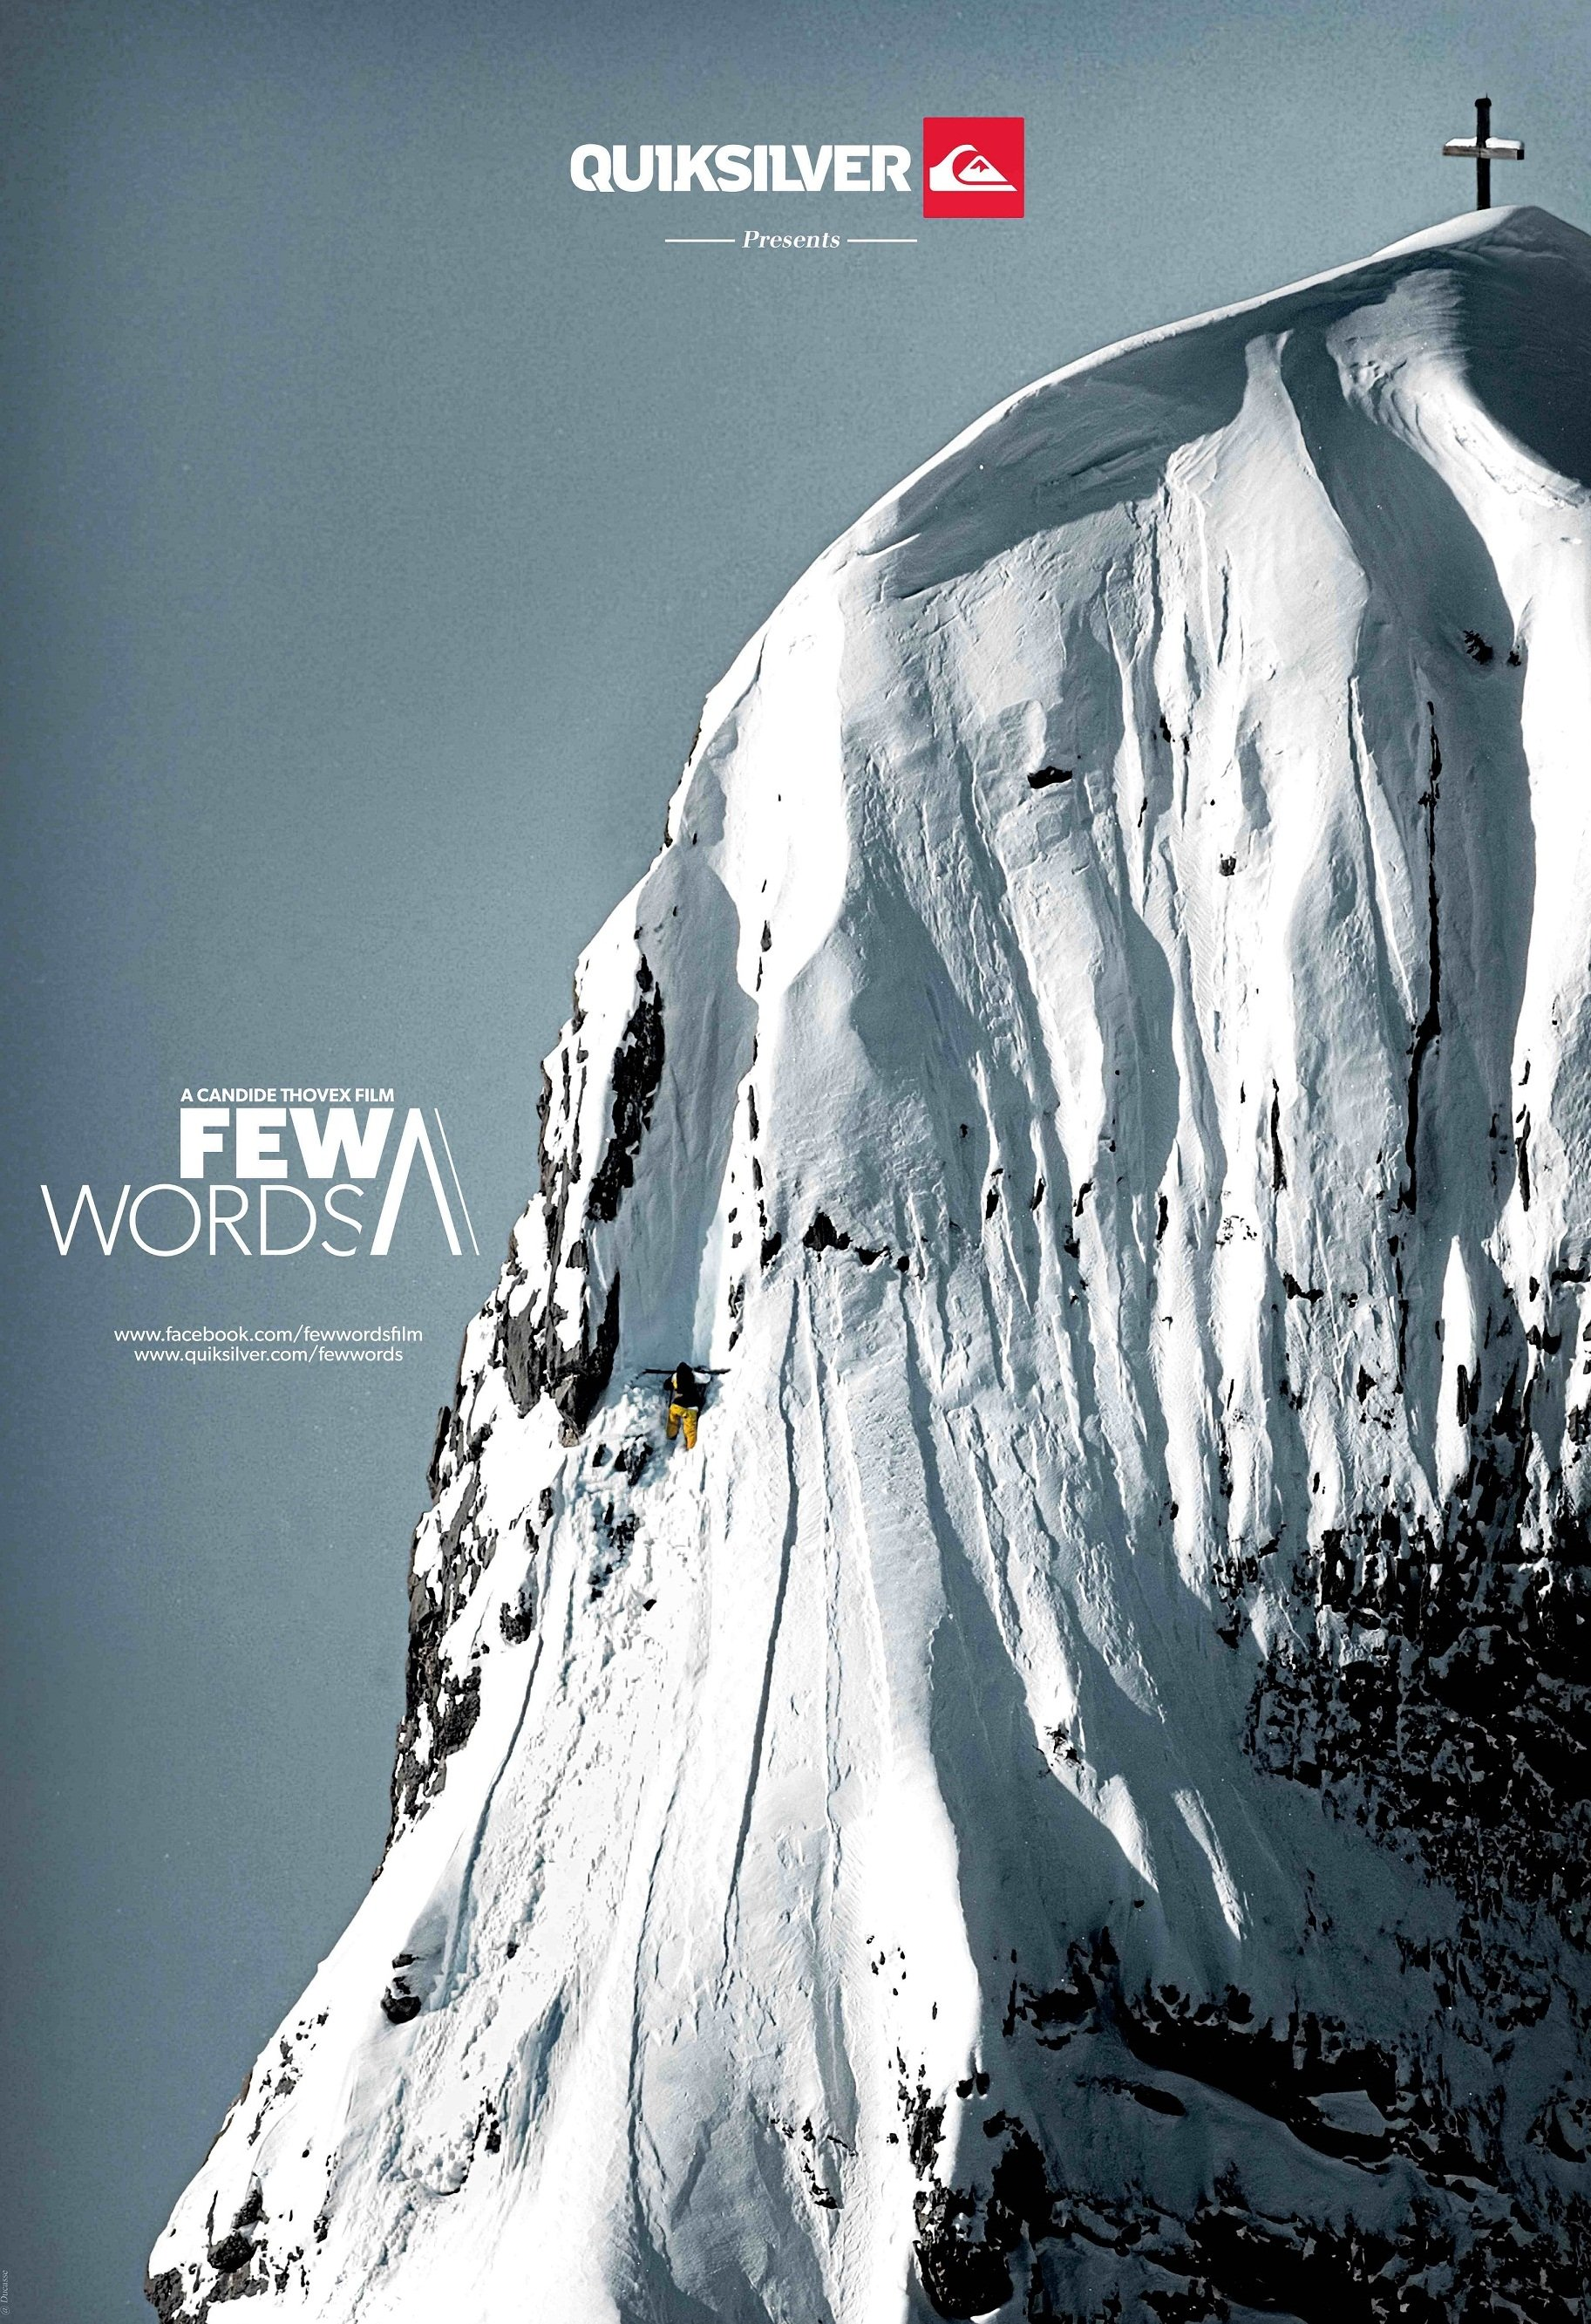 few words a candide thovex film watch documentary. Black Bedroom Furniture Sets. Home Design Ideas